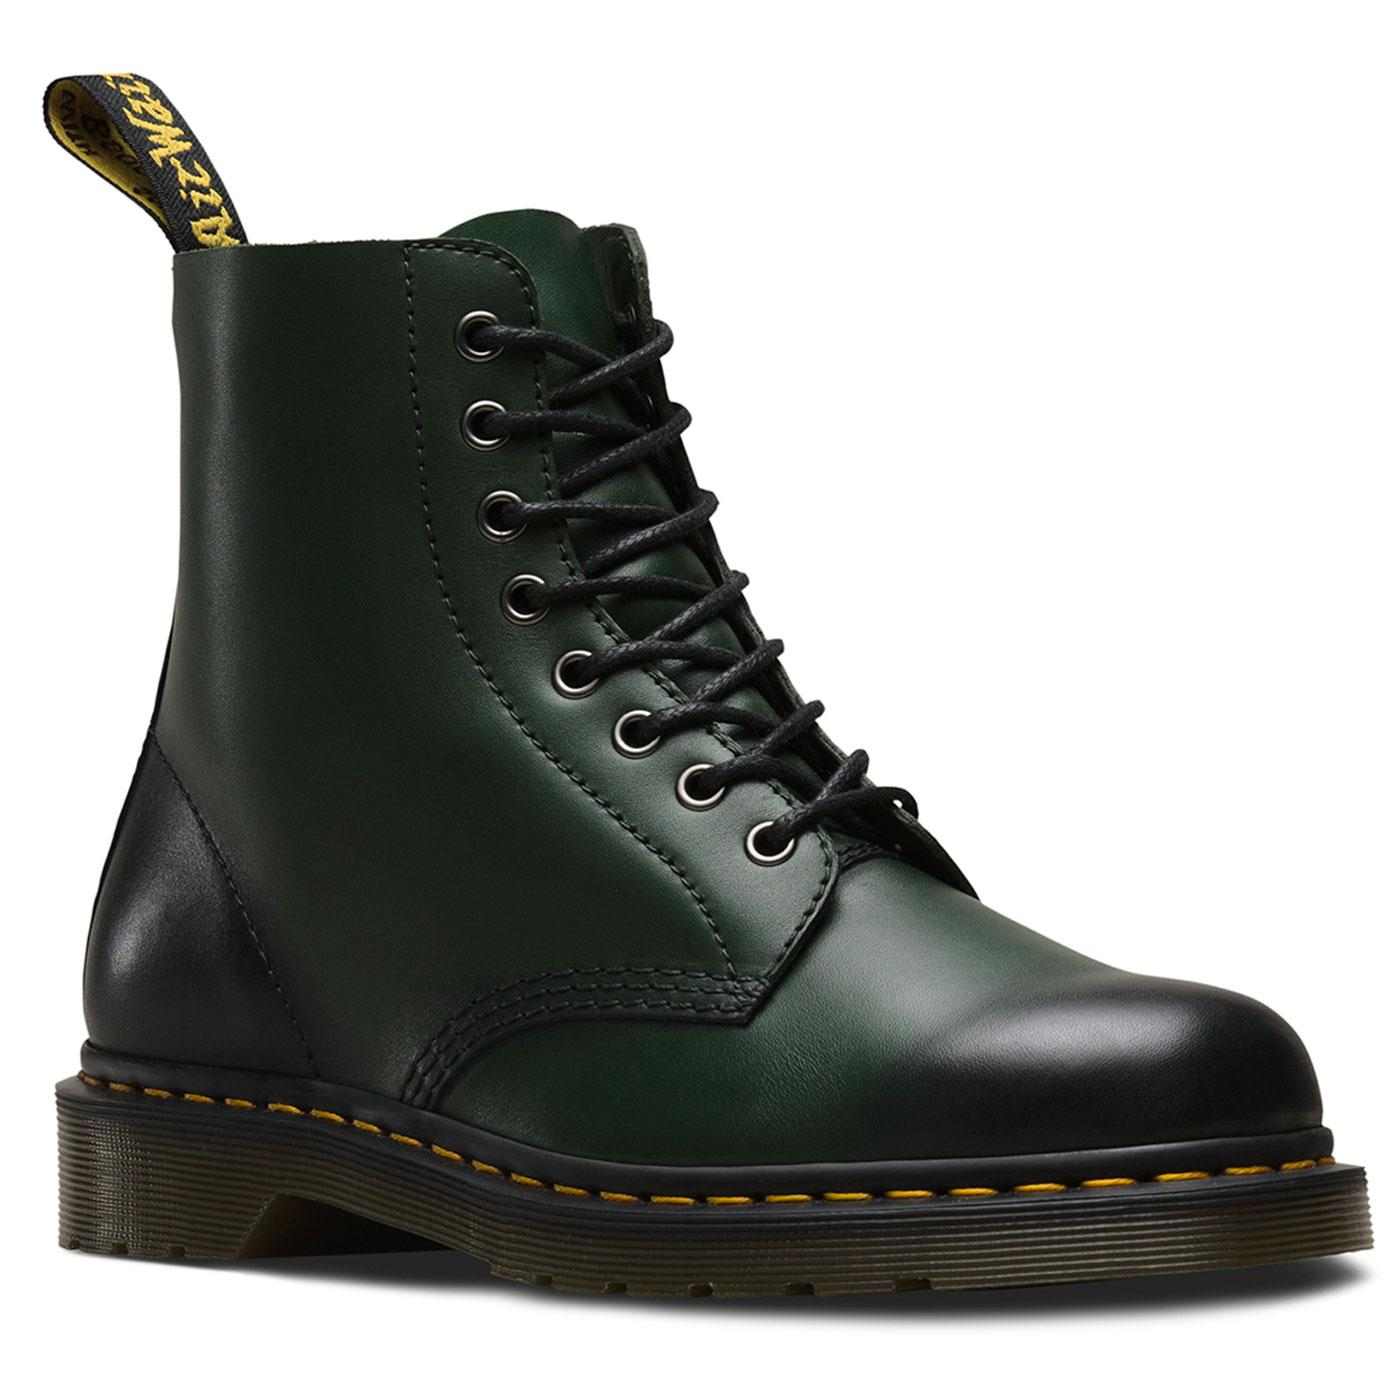 Pascal DR MARTENS Antique Temperley Boots Green